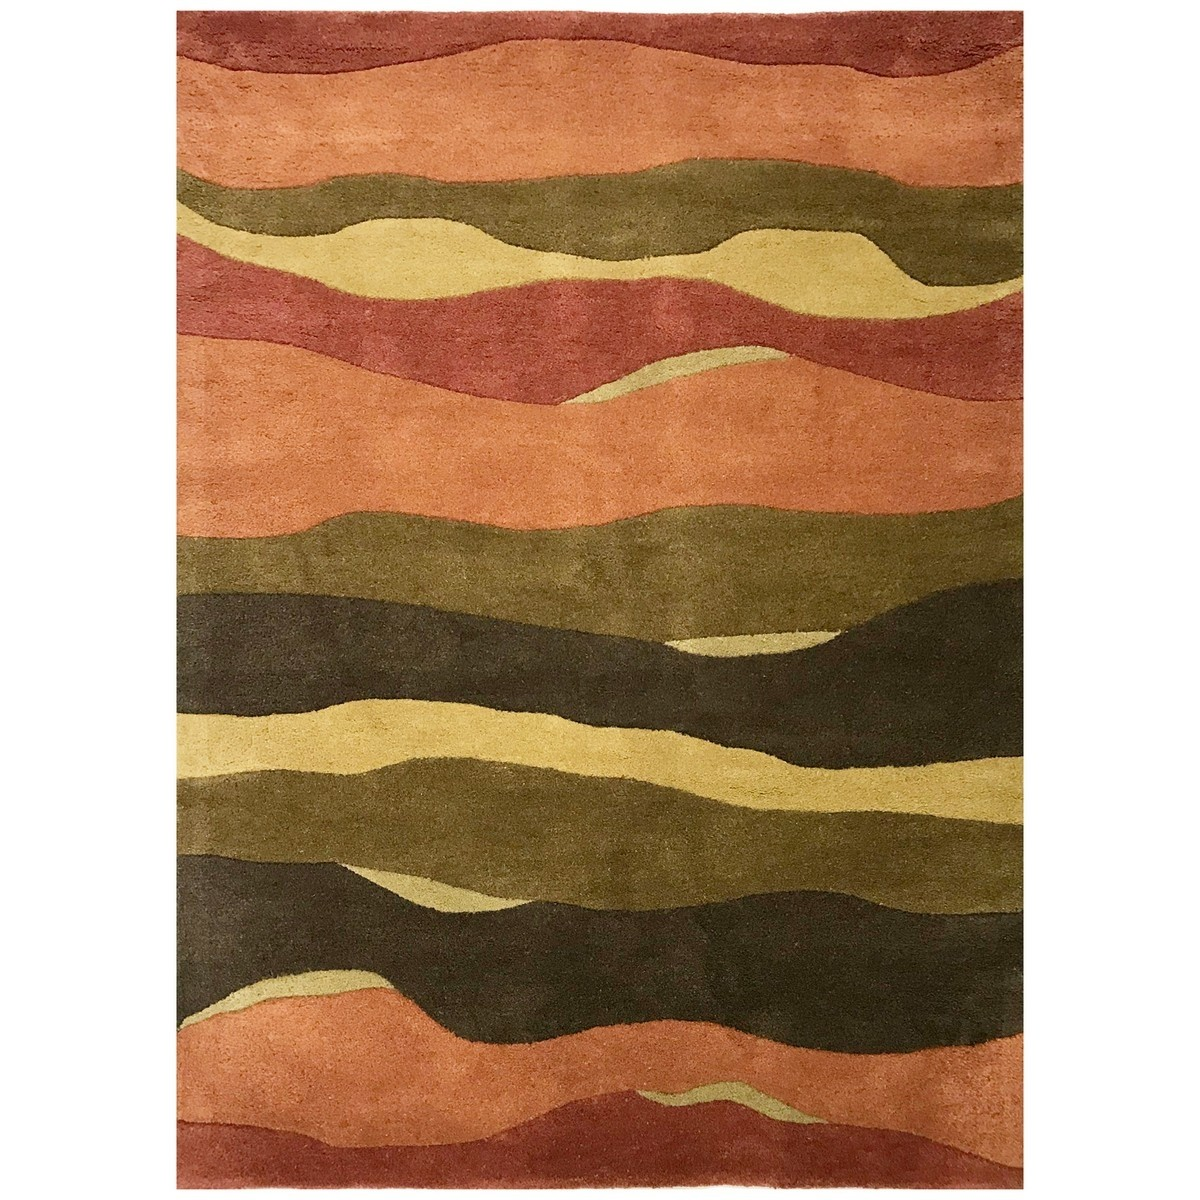 Barrine Hand Tufted Modern Wool Rug, 280x190cm